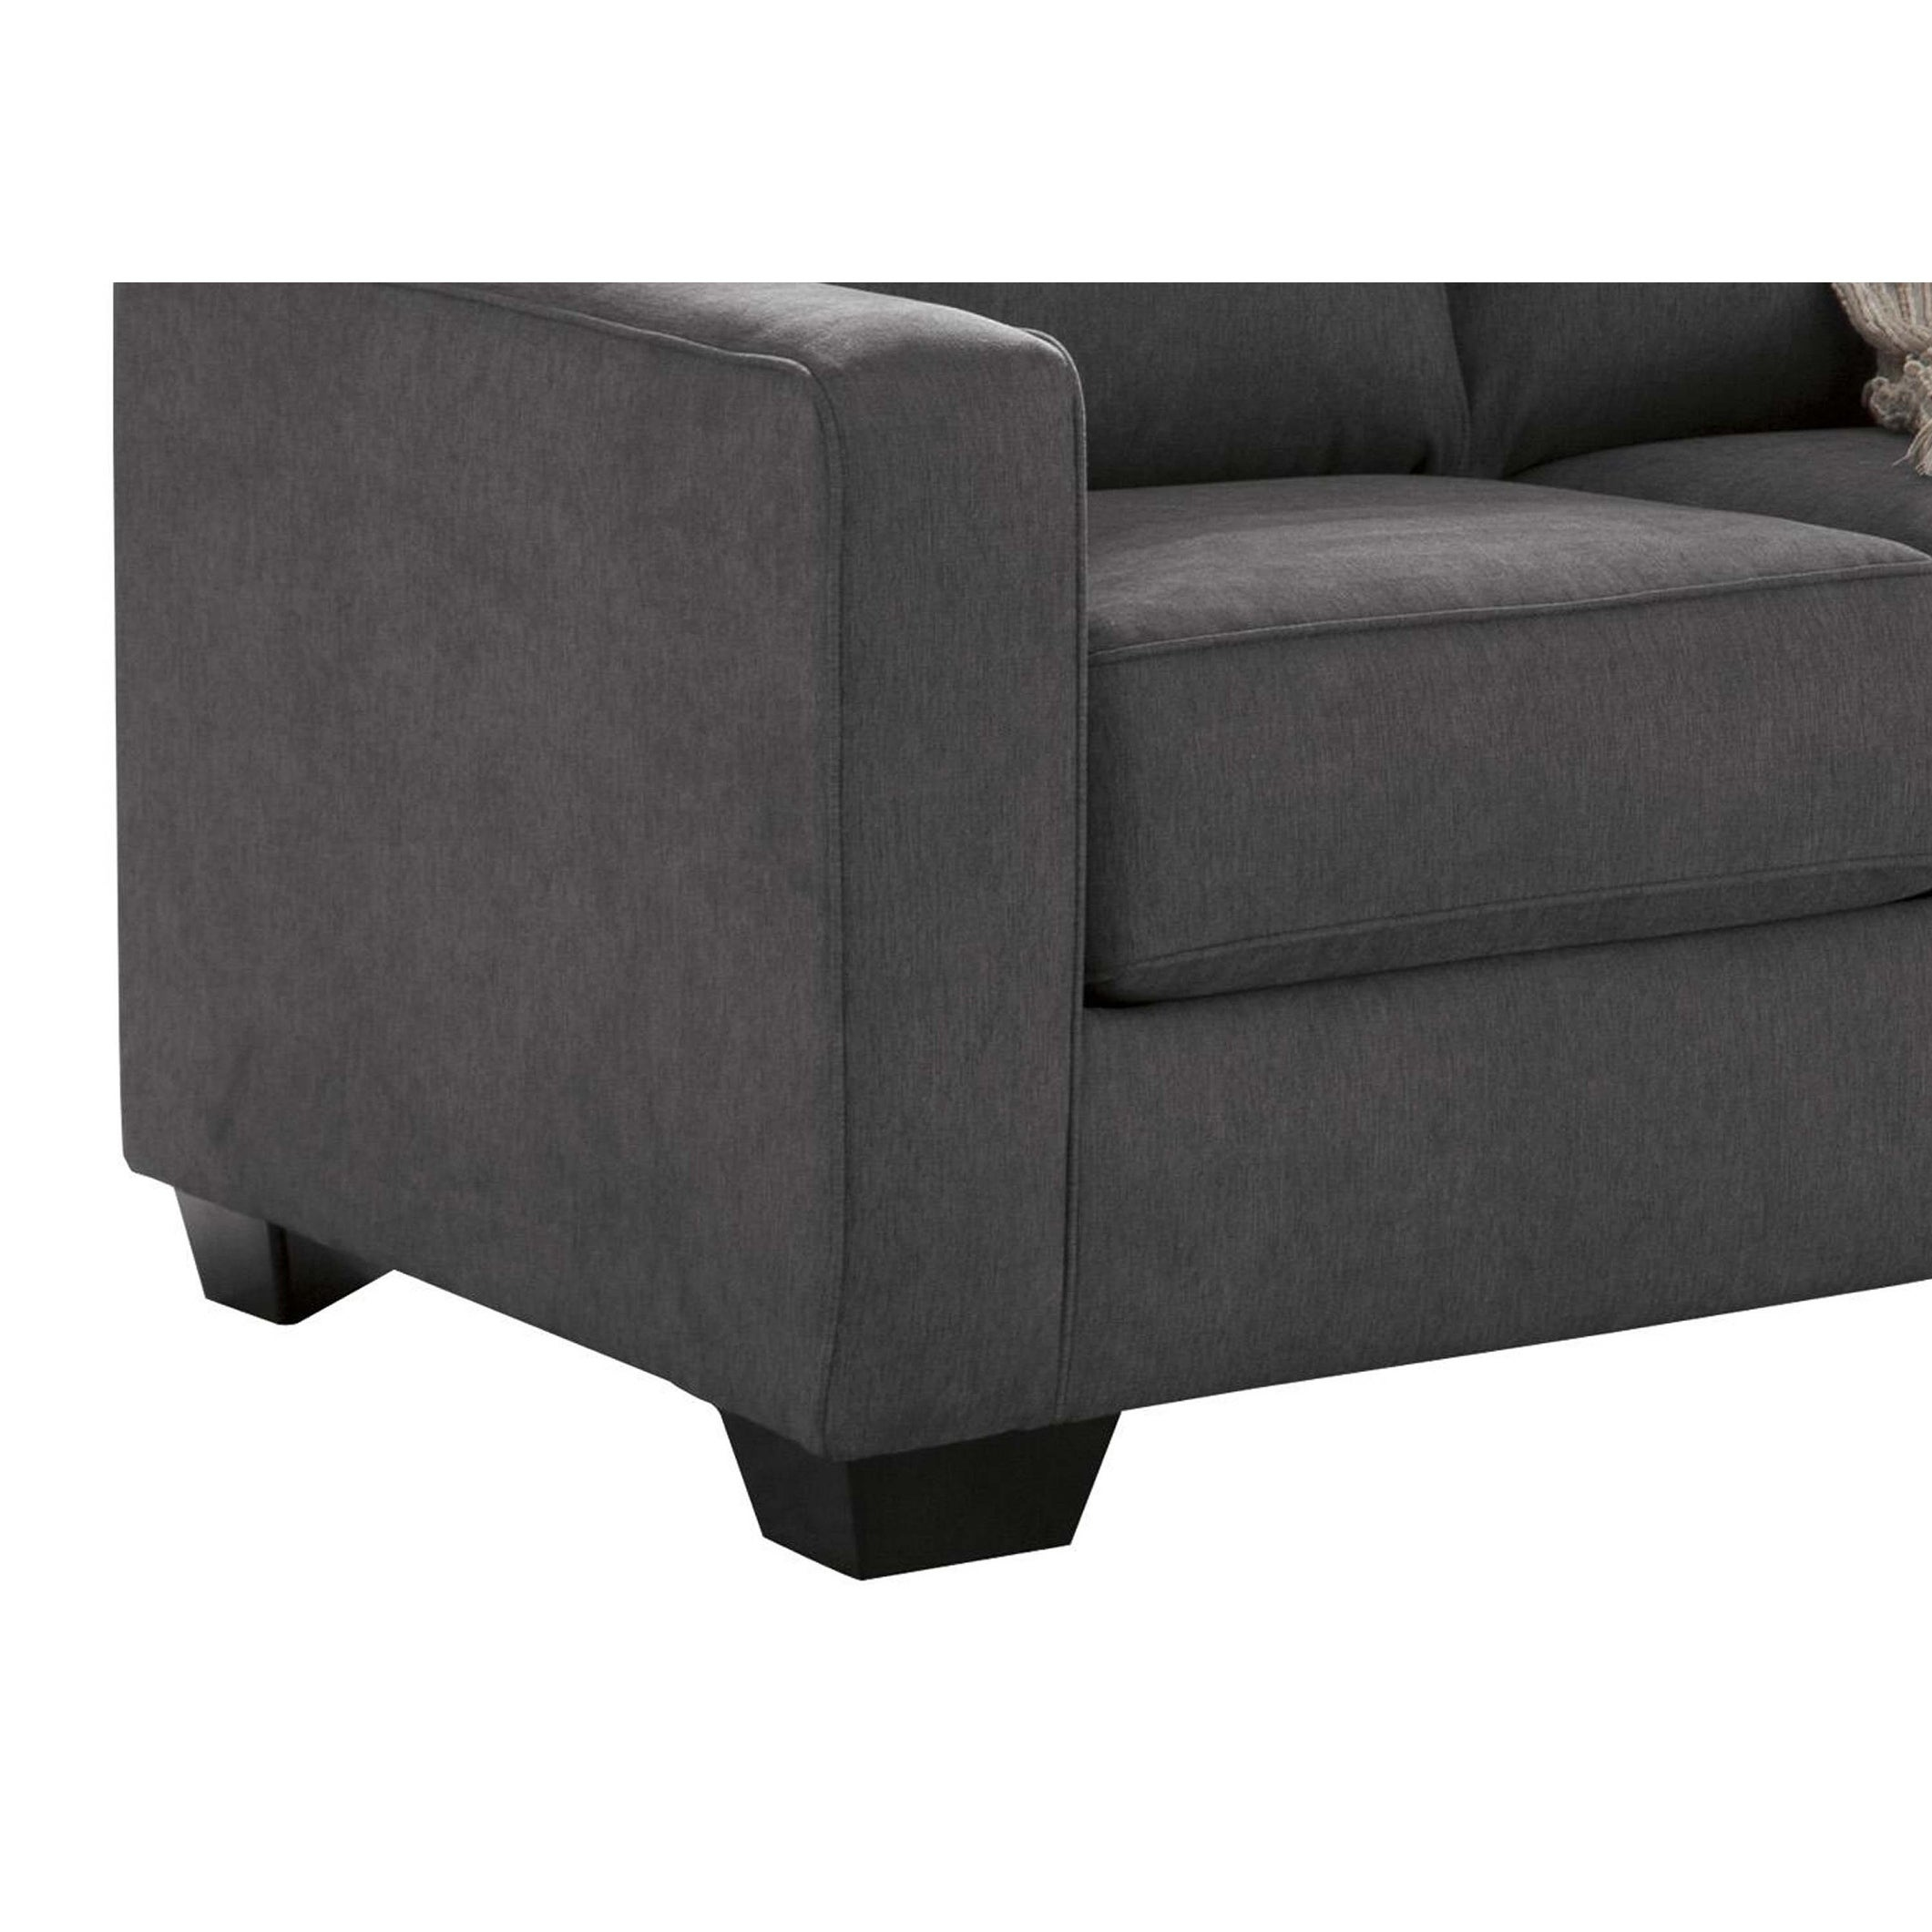 - Shop Fabric Upholstered Twin Sleeper Sofa With Tapered Legs